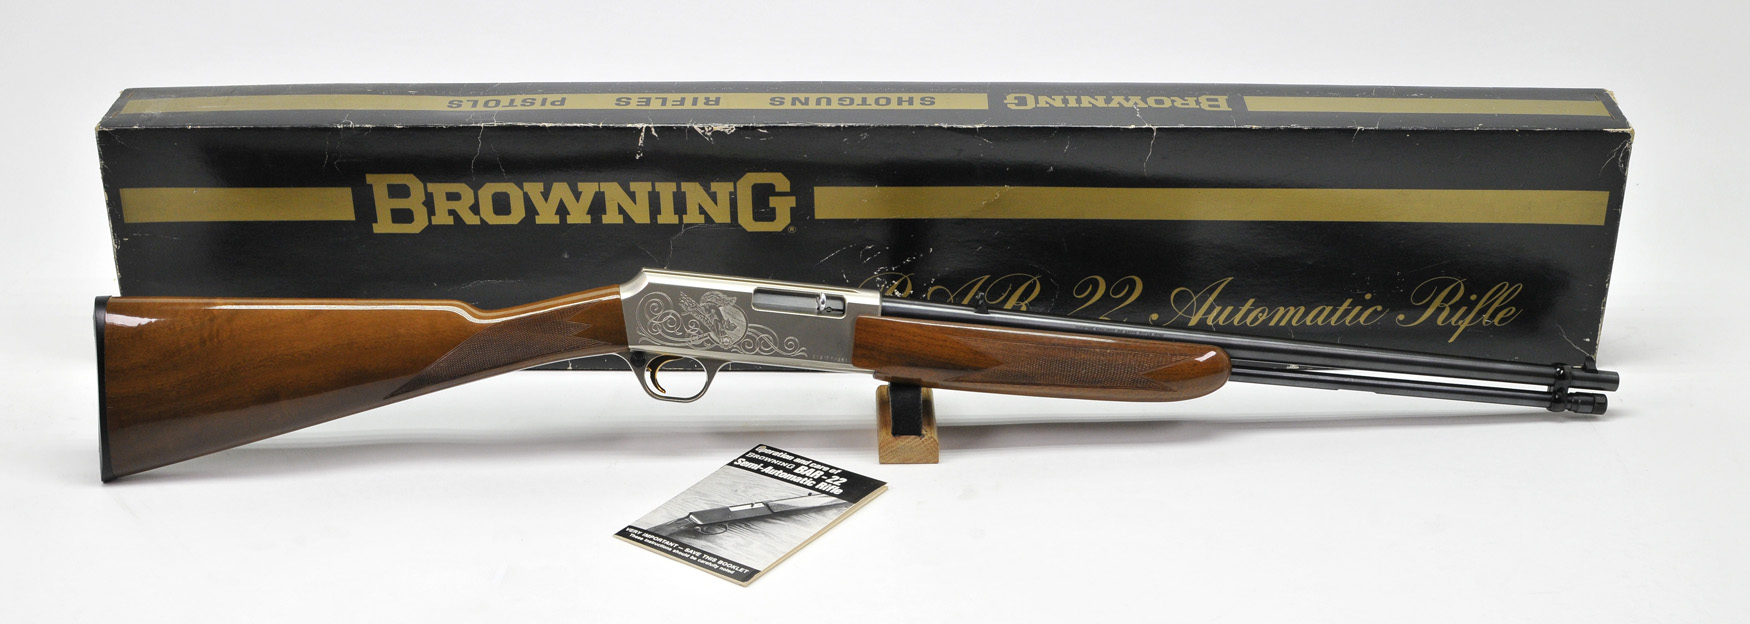 browning bar-22